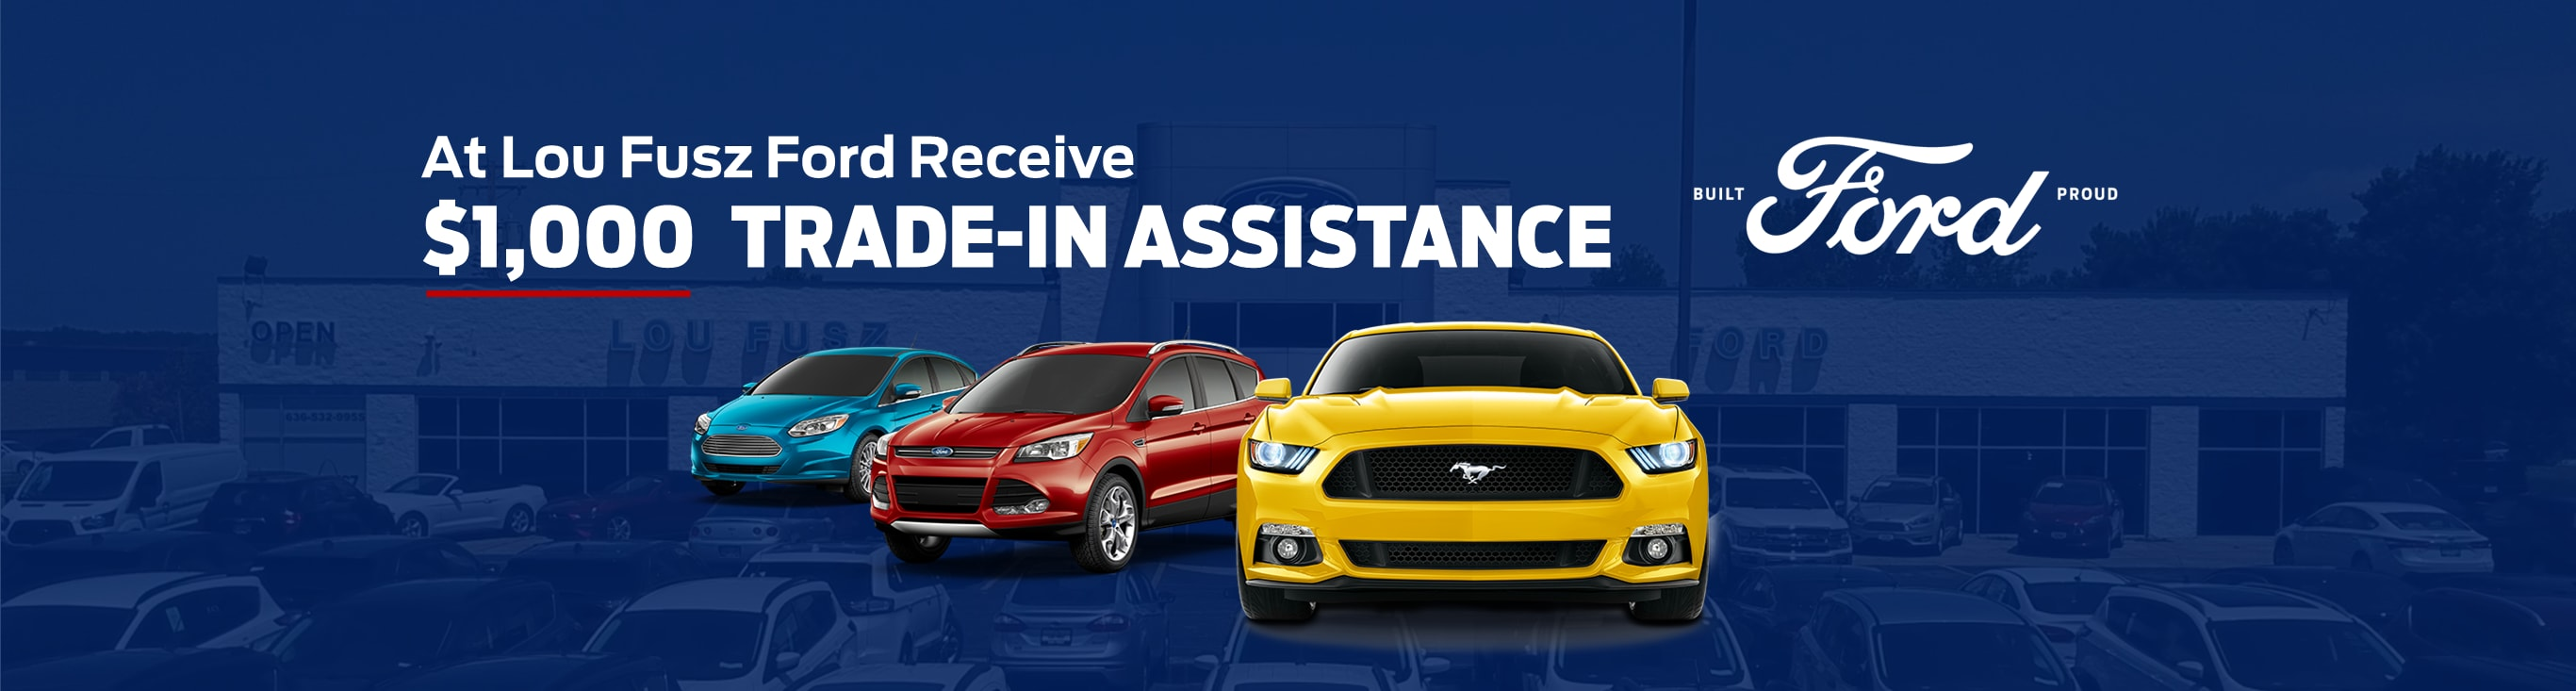 St Louis Ford Dealers >> Ford Dealership St Louis Lou Fusz Ford